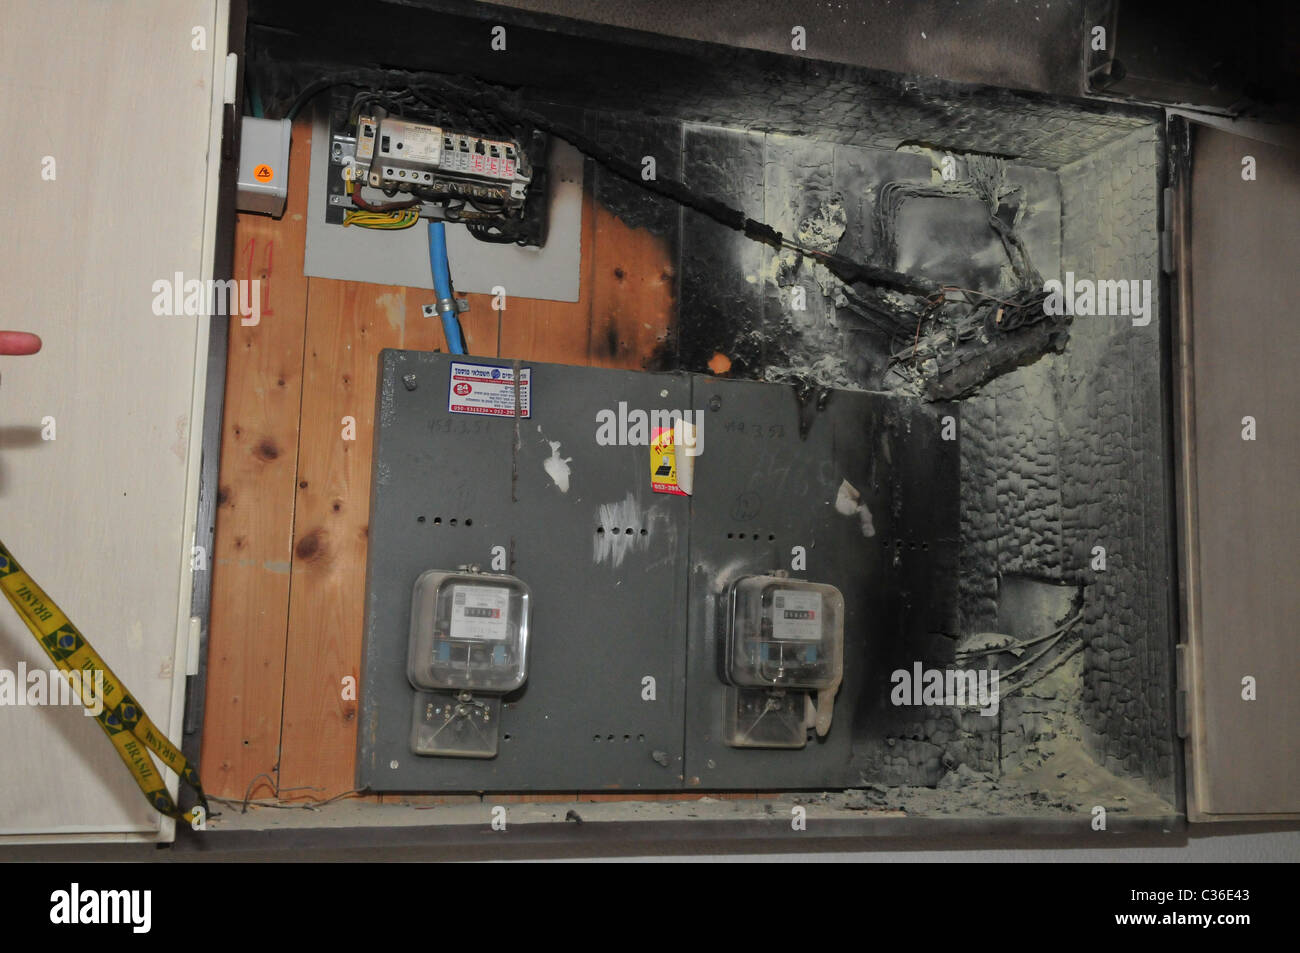 hight resolution of fuse box fire electrical wiring diagrams fire code breaker box a fire broke out in a